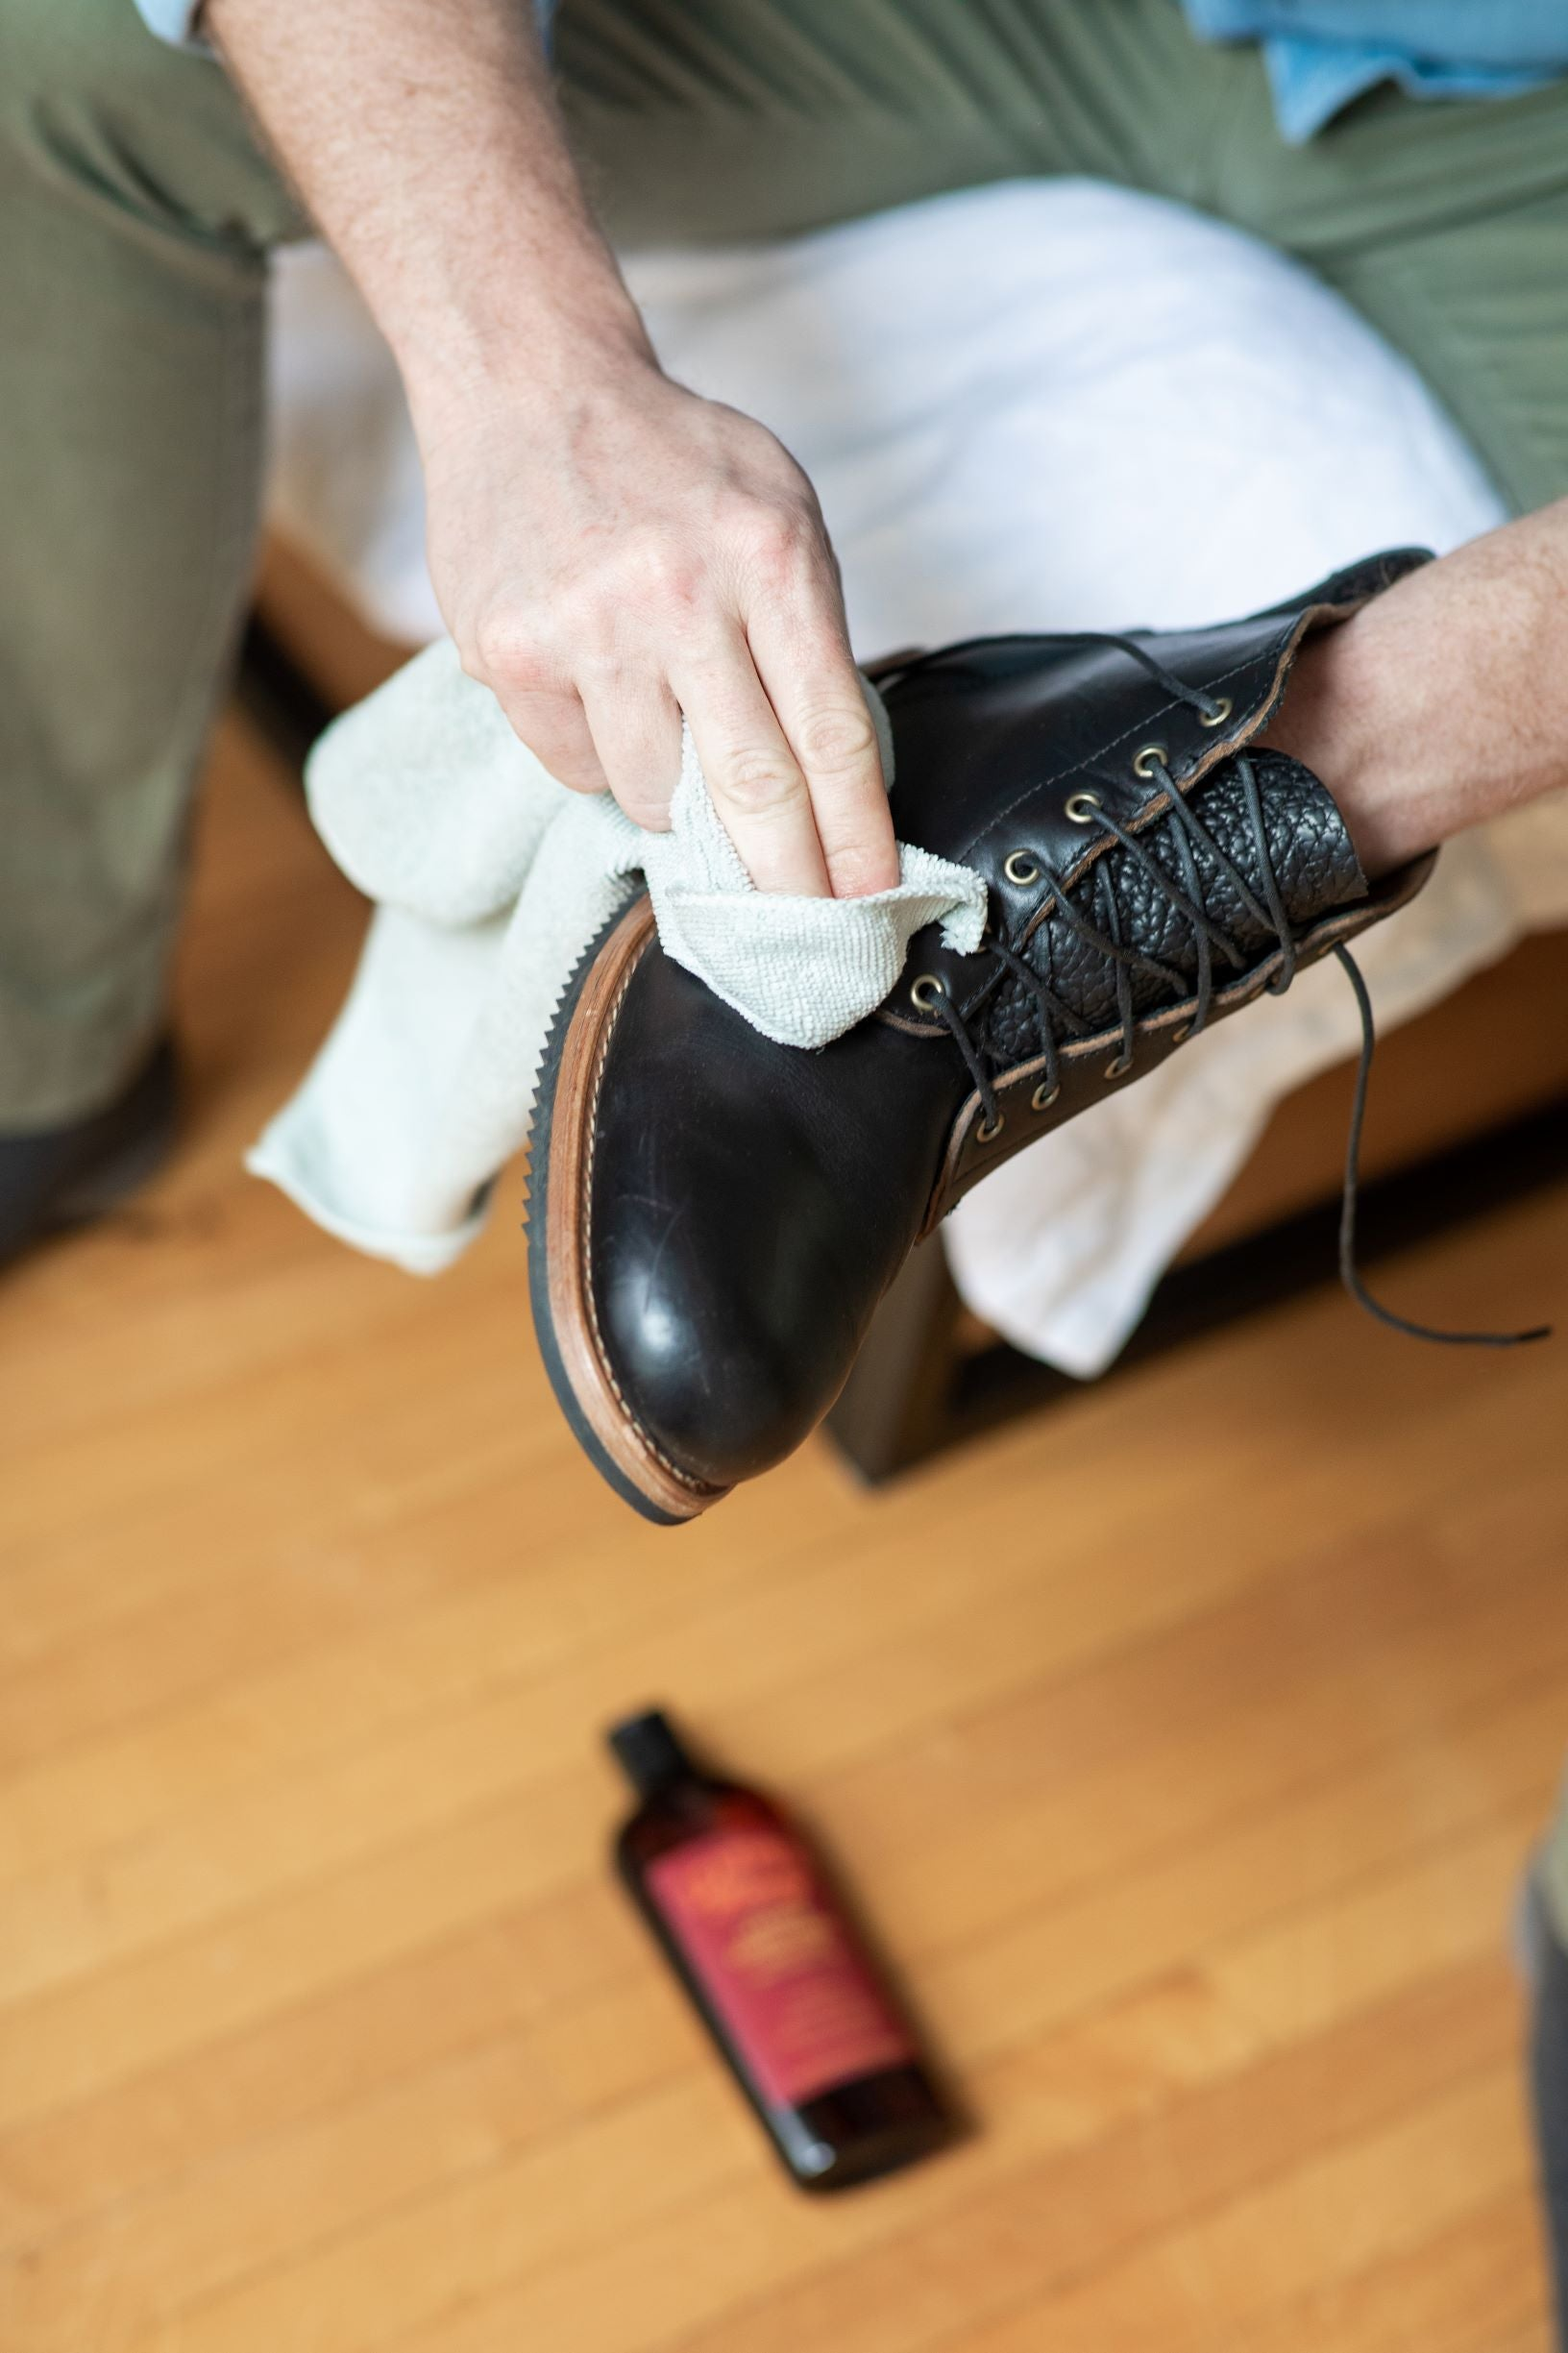 baby wipes to clean leather shoes